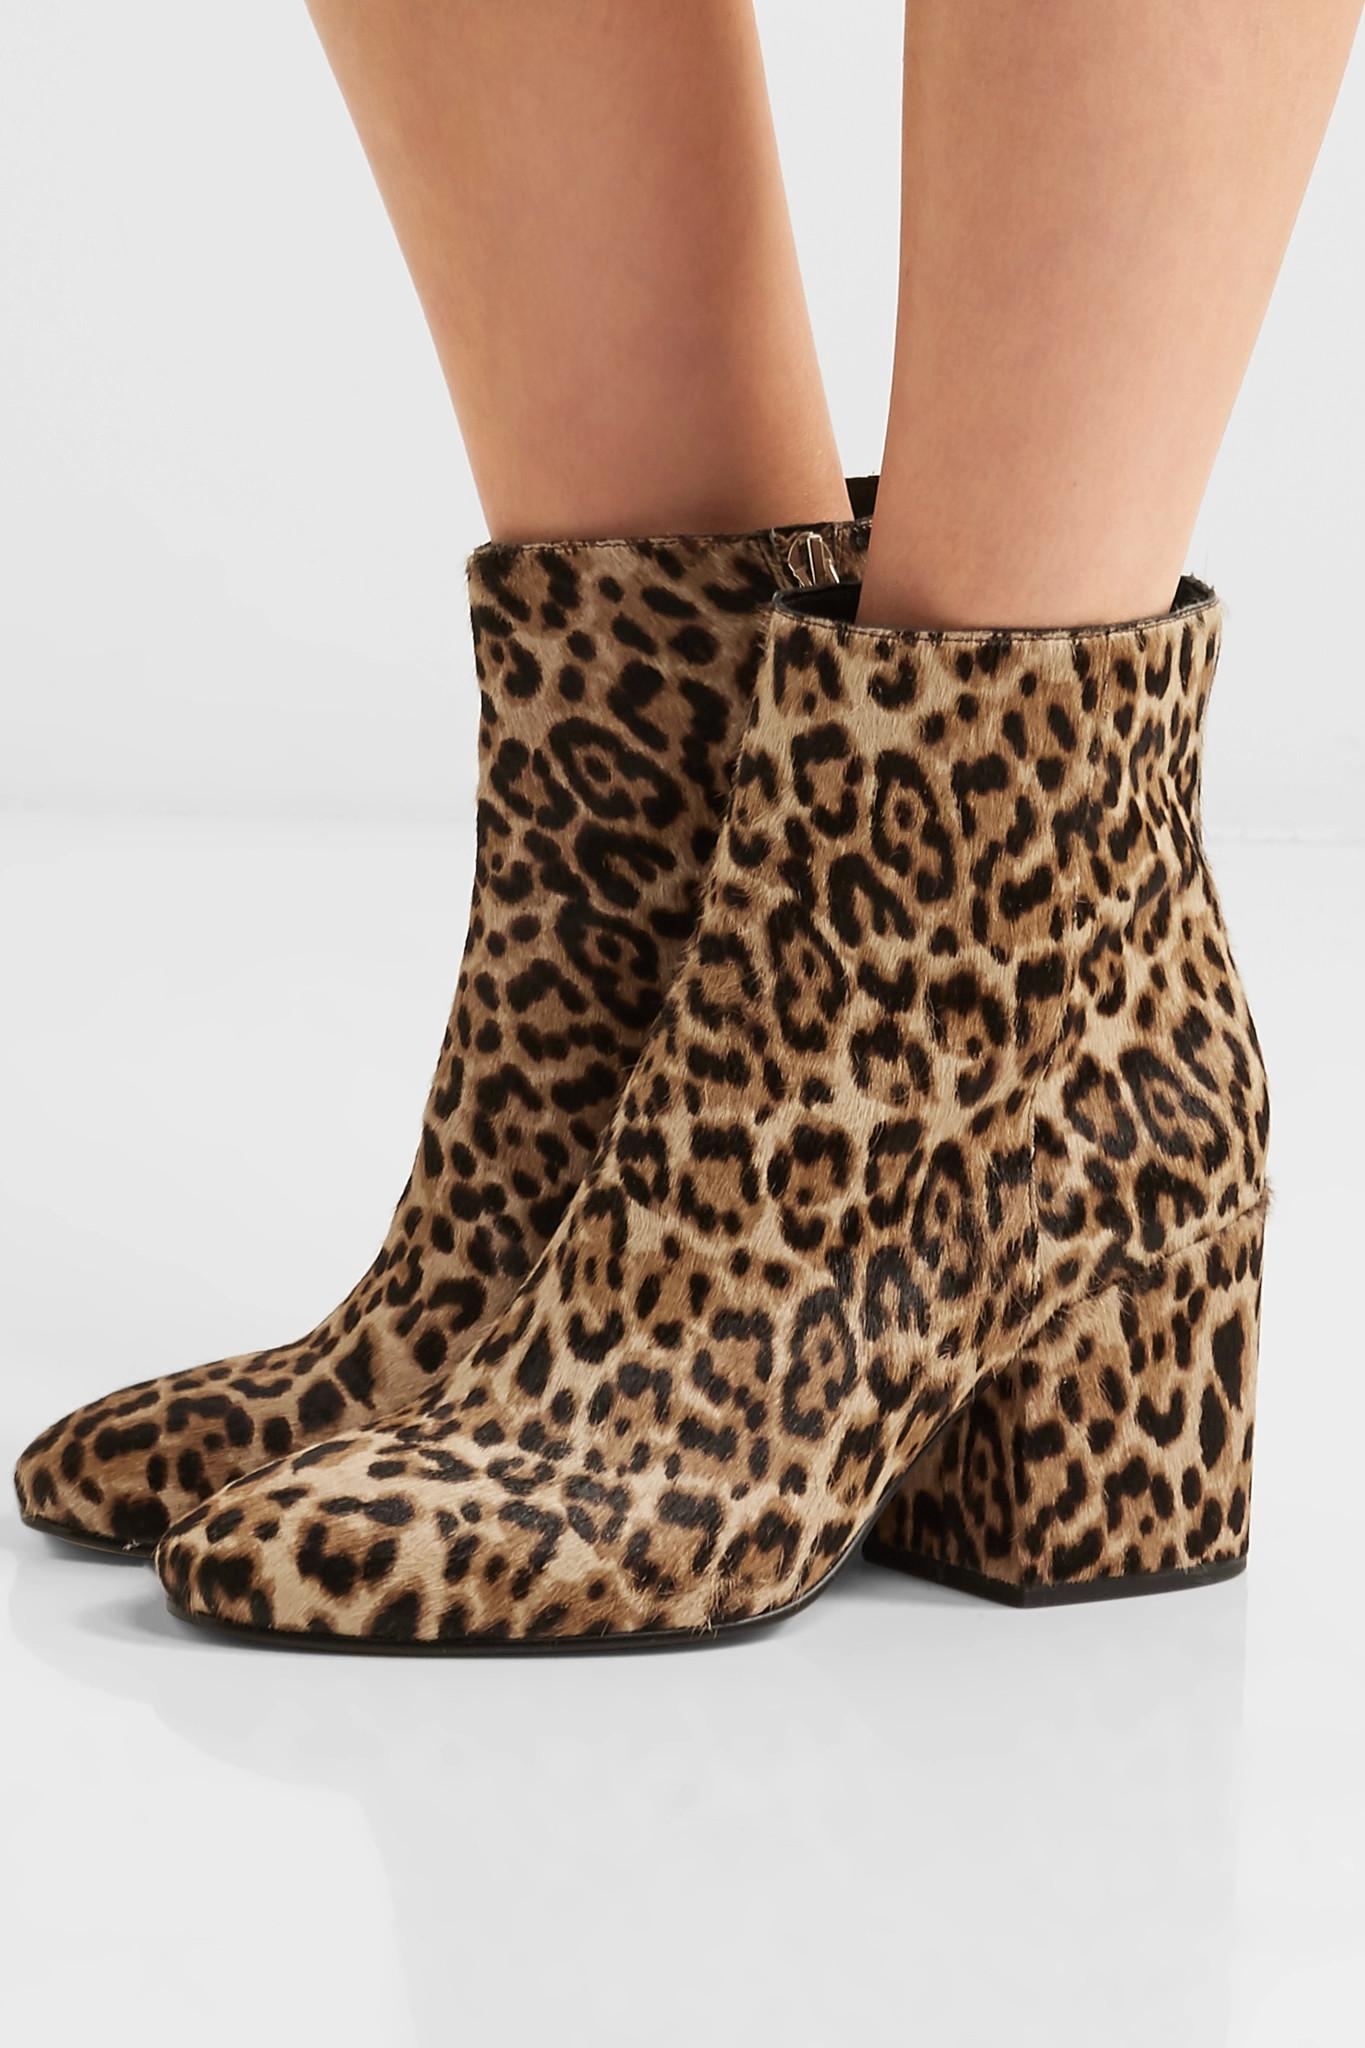 929062977831f Lyst - Sam Edelman Taye Leopard-print Calf Hair Ankle Boots in Brown